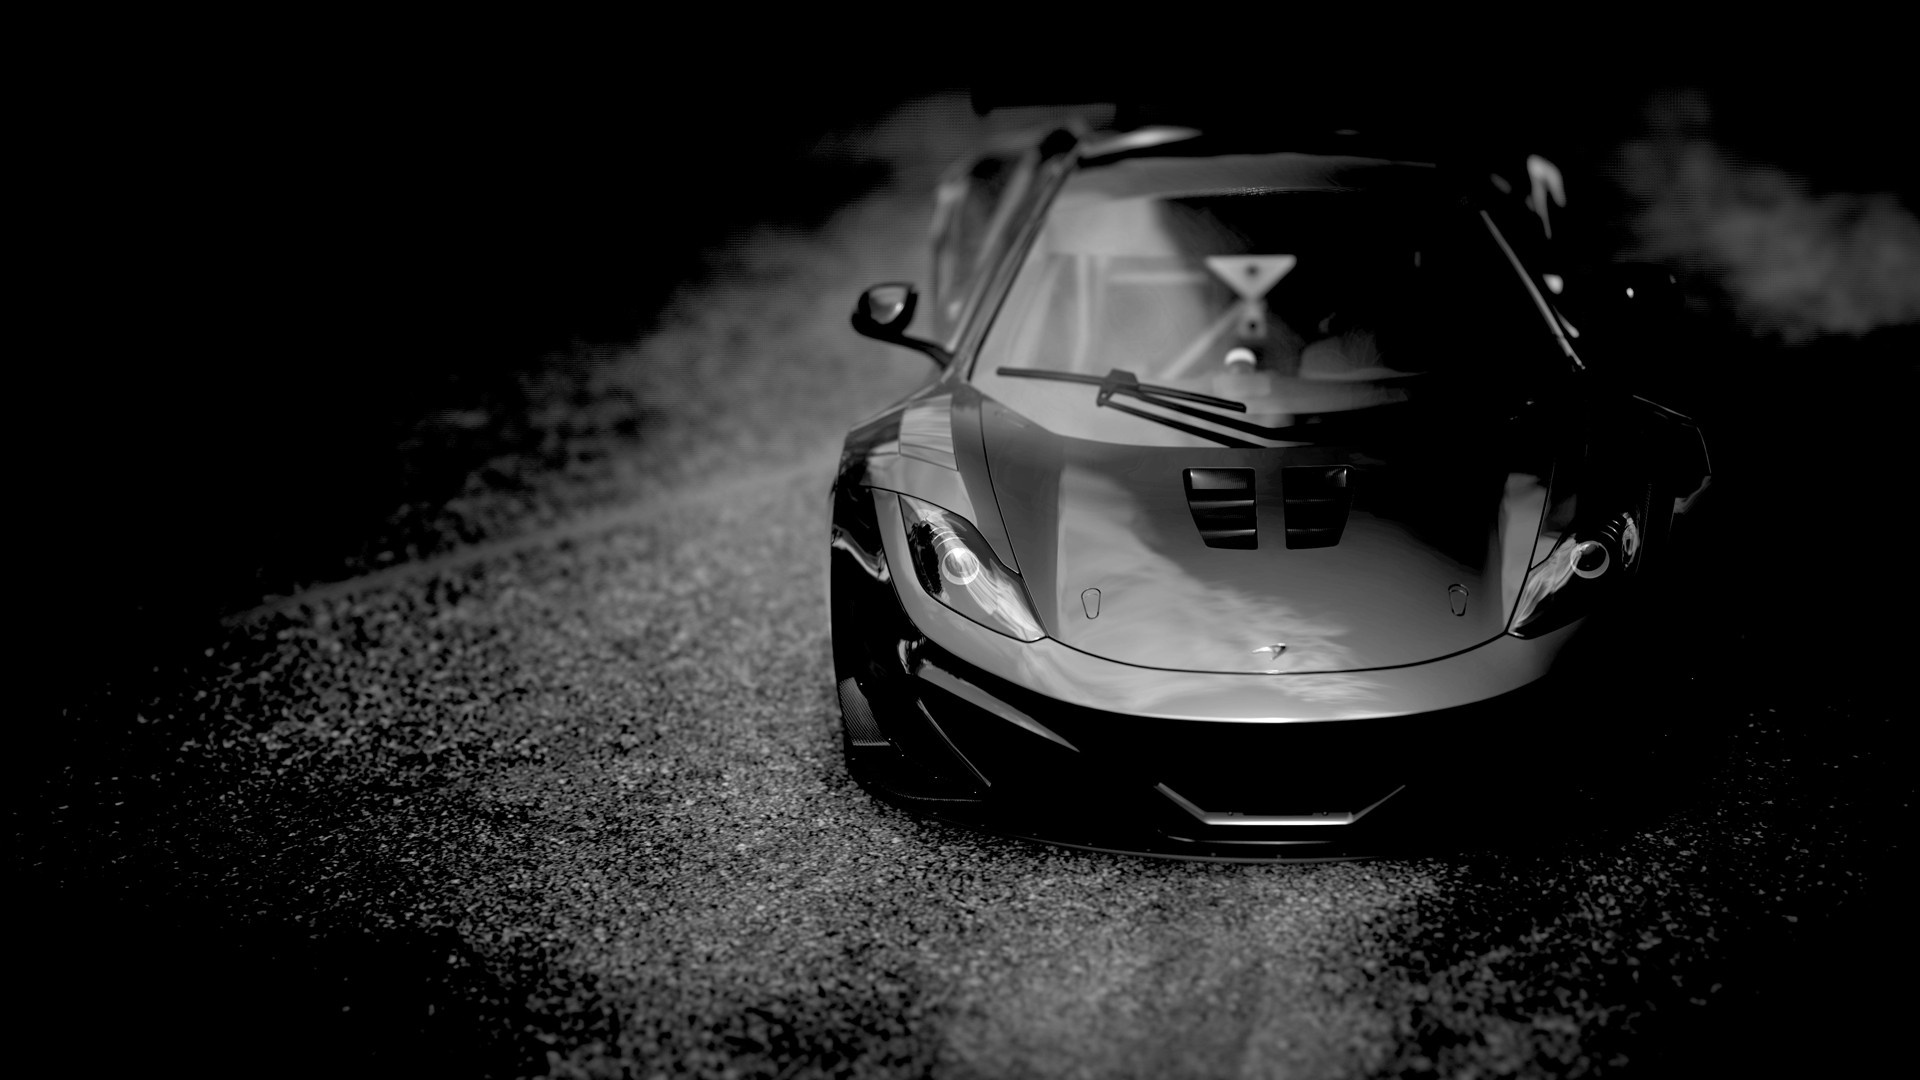 Awesome Mclaren MP4 Wallpaper 29937 1920x1080 px ~ HDWallSource.com